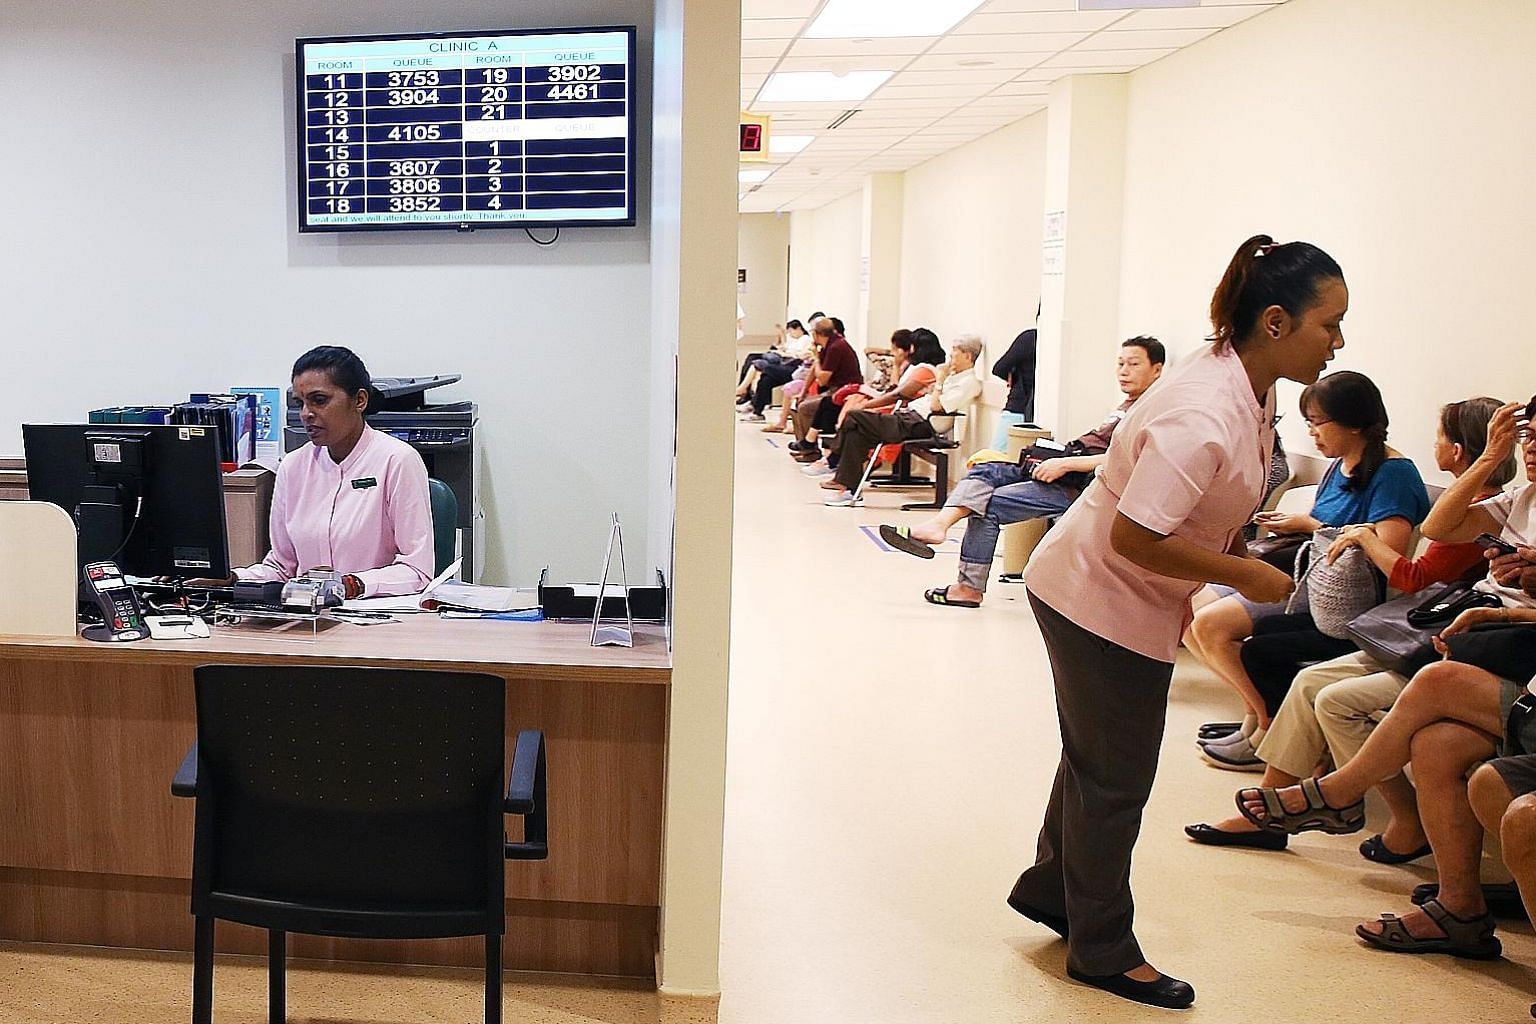 Staff will not be able to access the Internet from their work computers once Internet access is delinked at all public healthcare clusters.